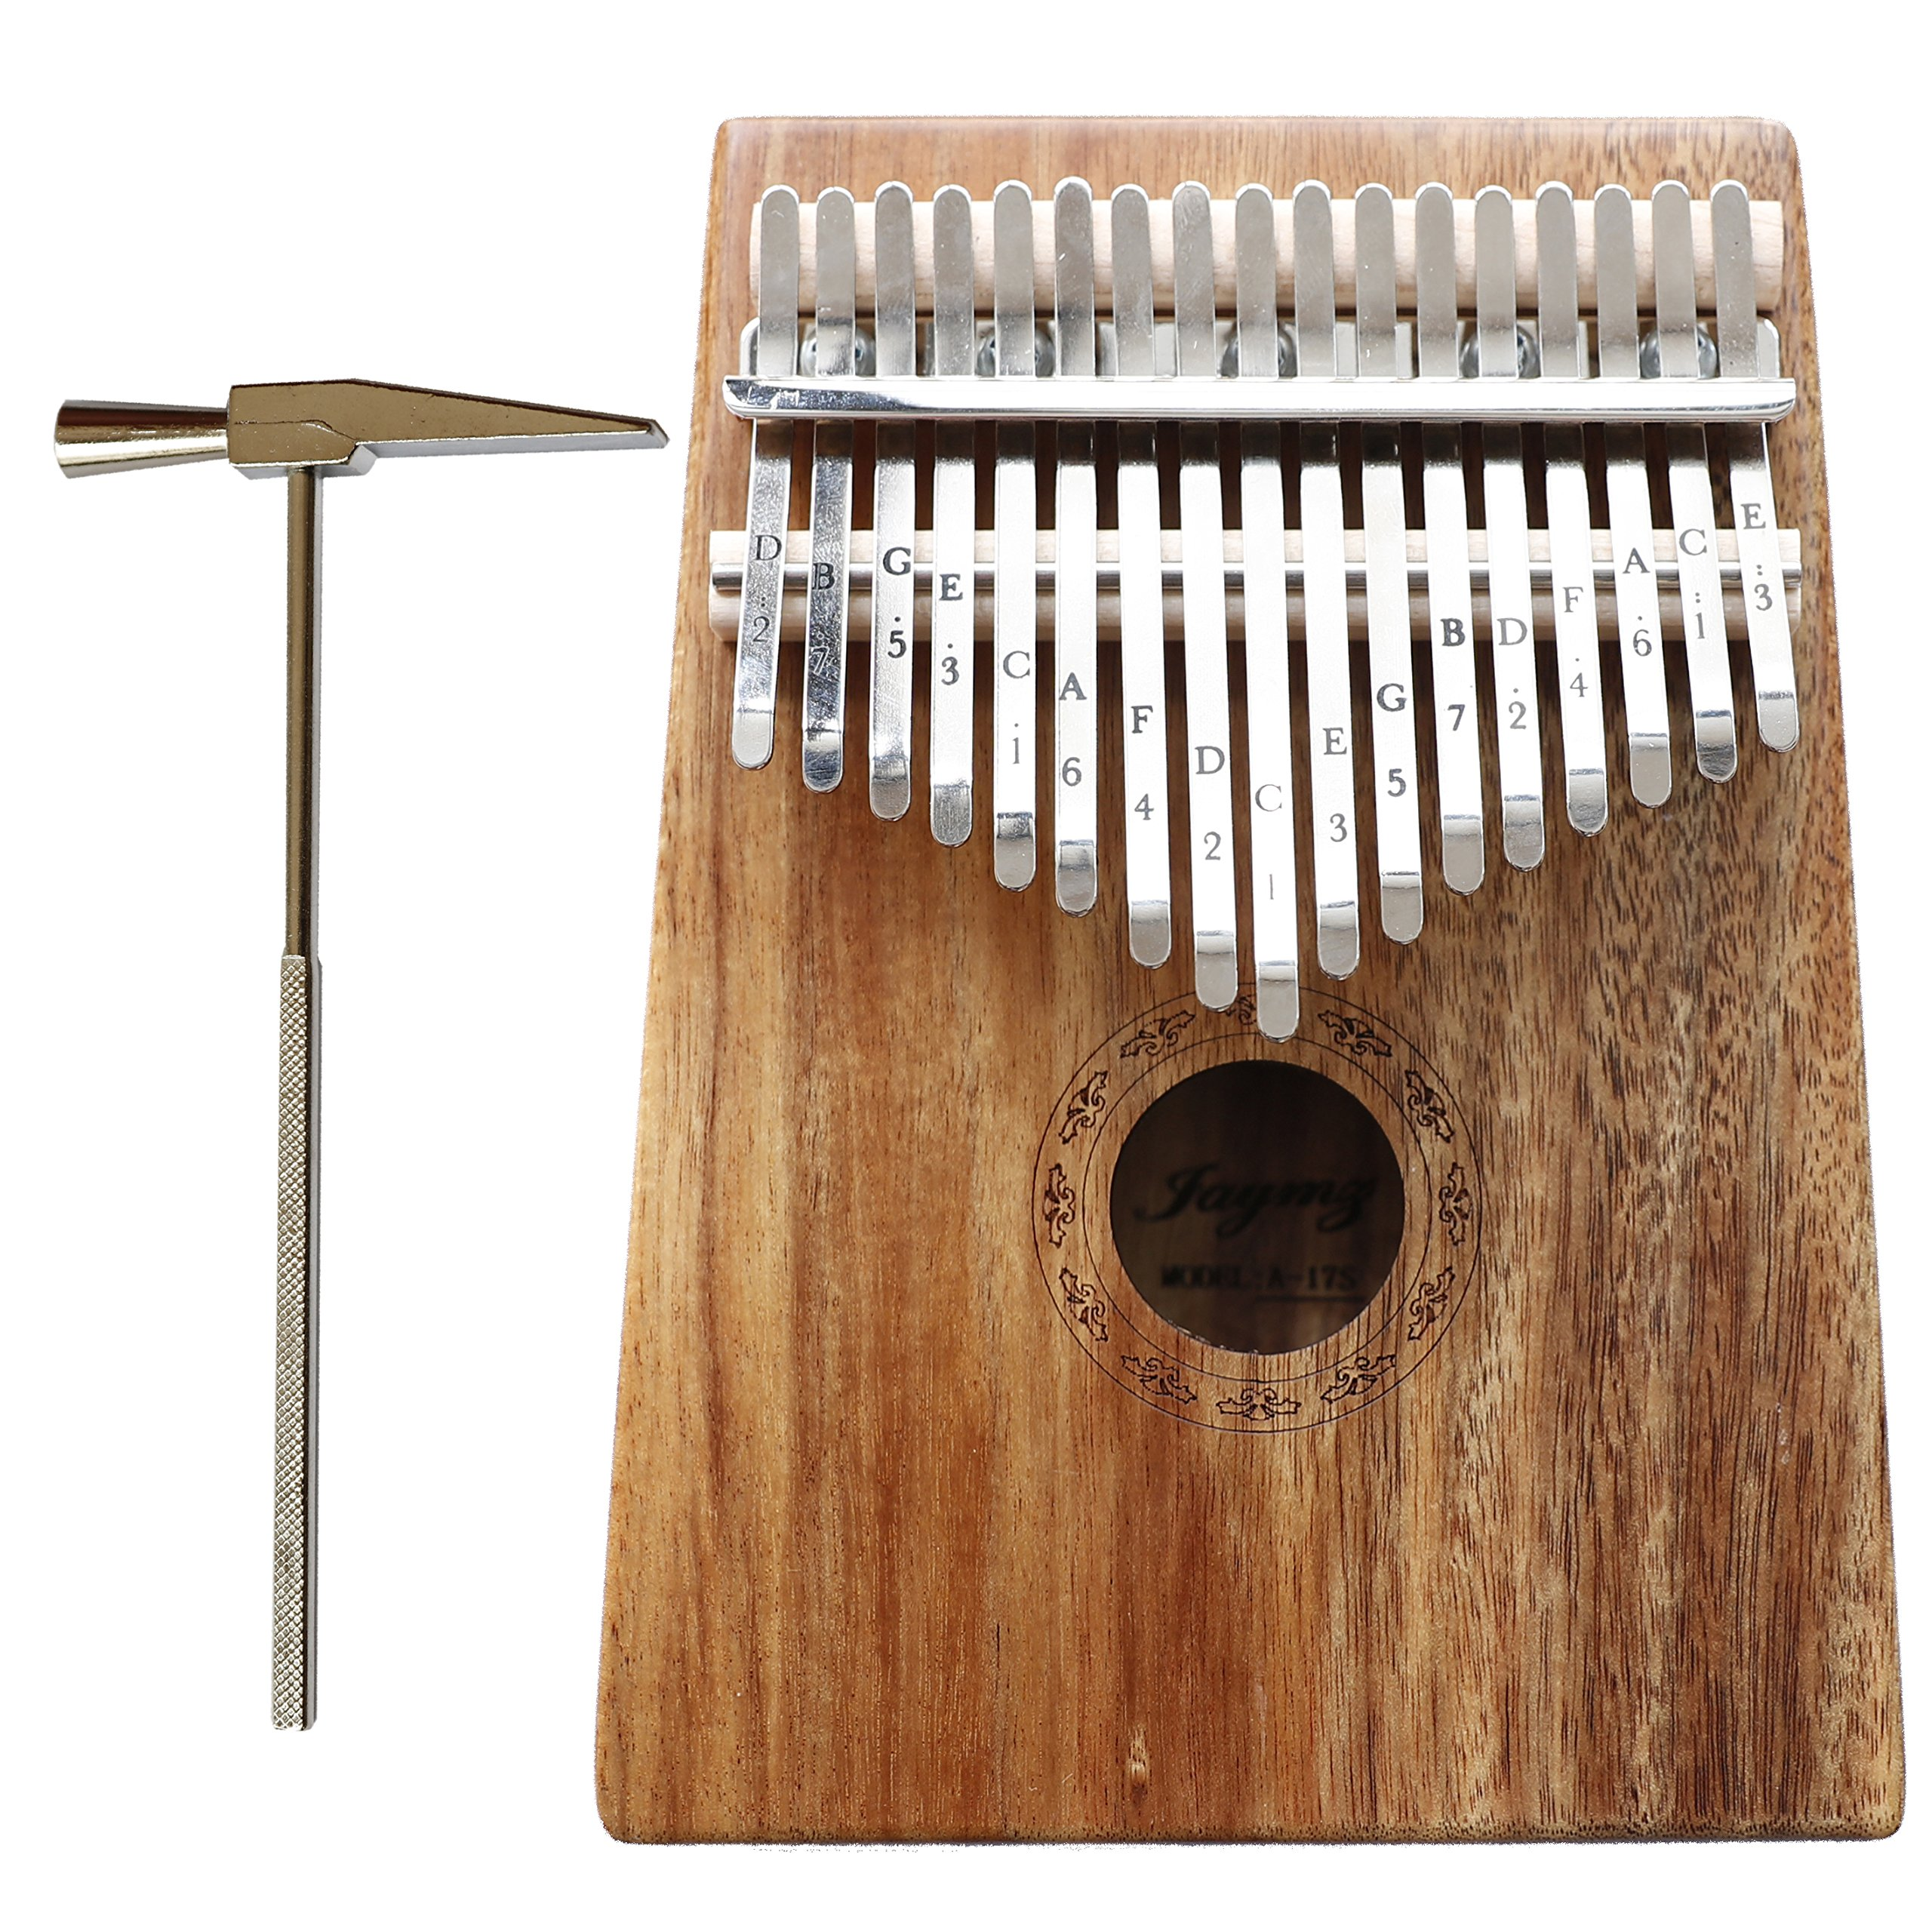 Jaymz Kalimba Mbira with 17 keys thumb piano - All SOLID WALNUT in matte color with natural grain by Jaymz